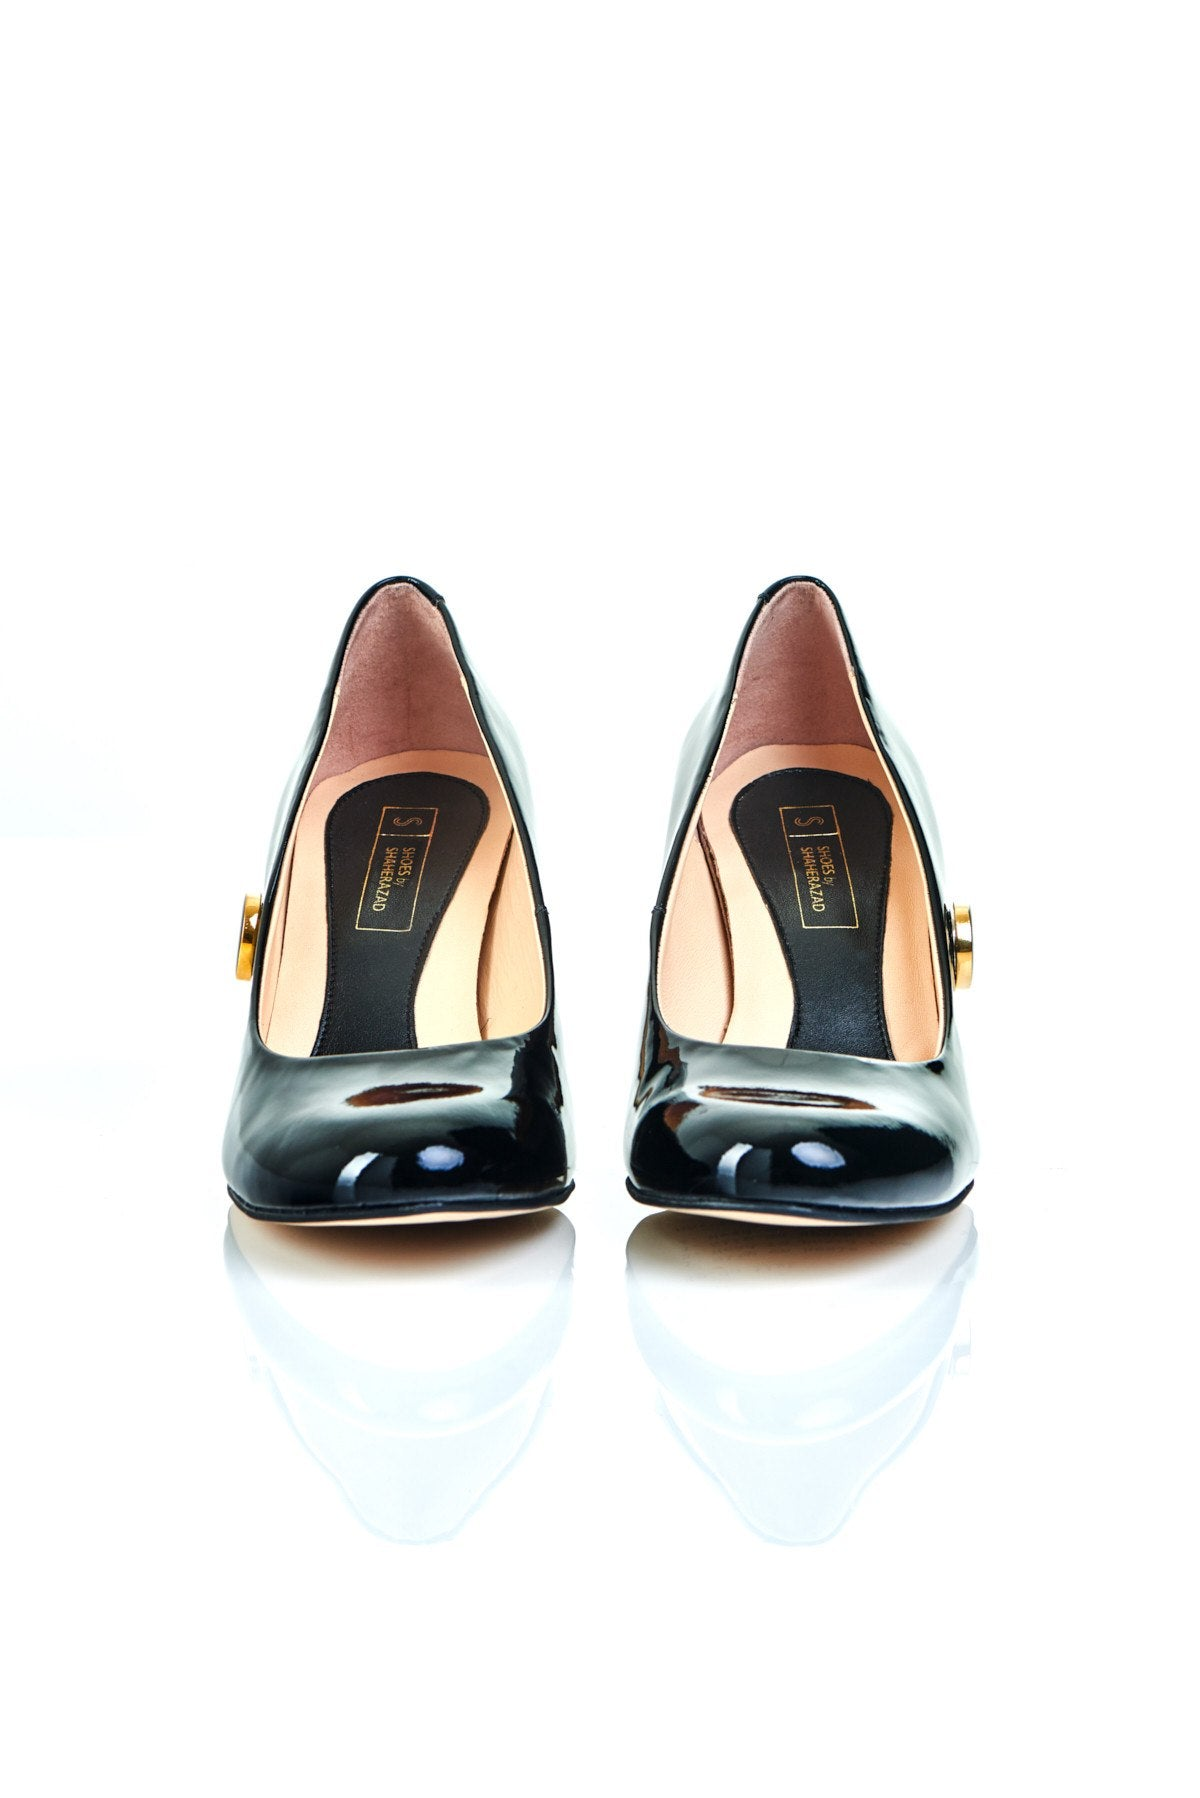 Stand Tall Sister - Shoes by Shaherazad